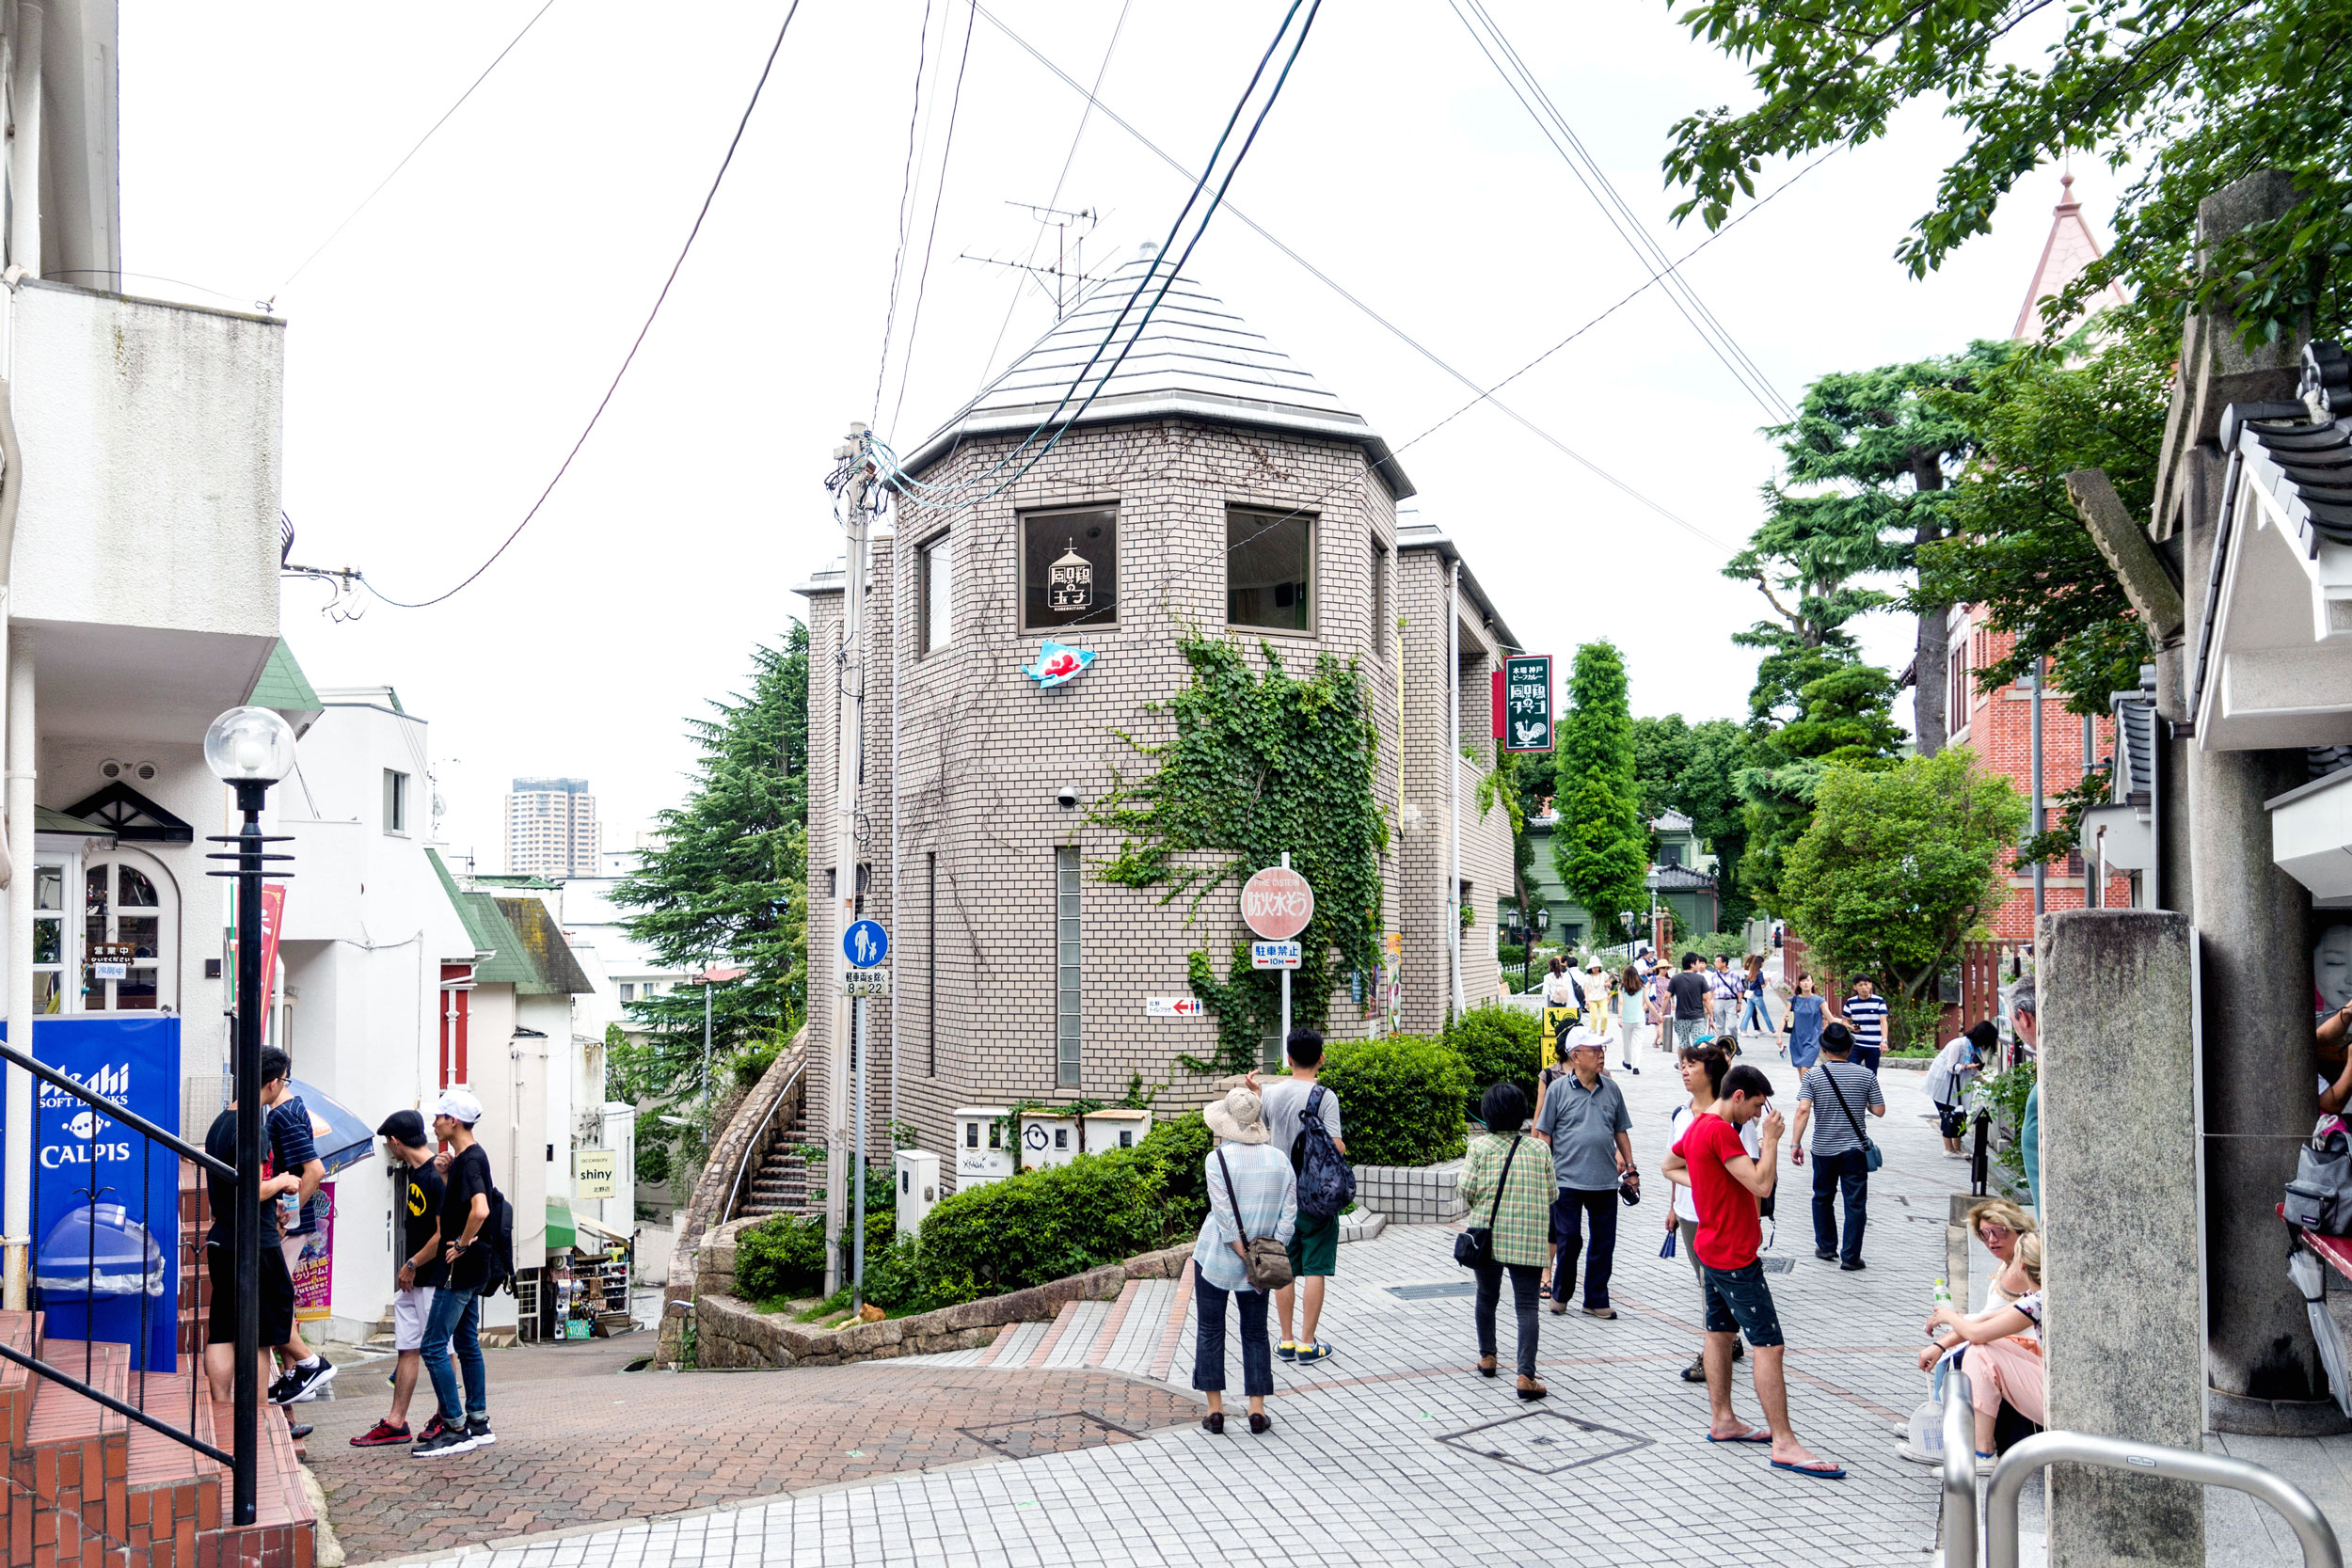 The streets of Kitano, a mountainside area of international buildings from when the port first opened to the world.